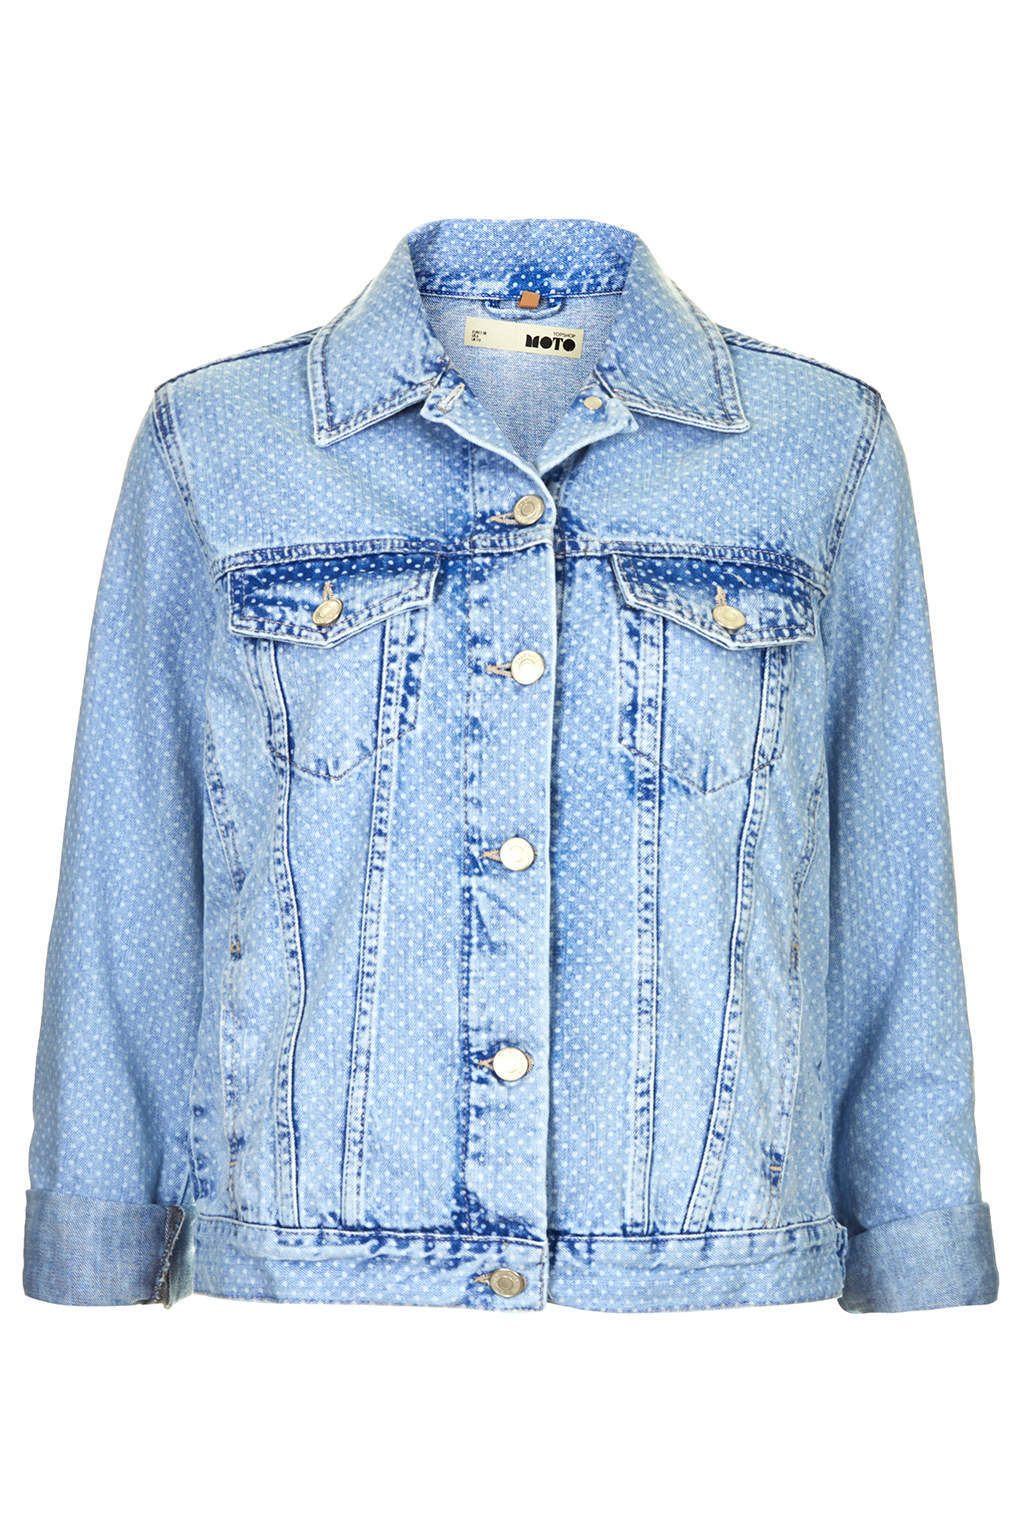 Topshop womens moto denim spot western jacket blue in blue for Womens denim shirts topshop